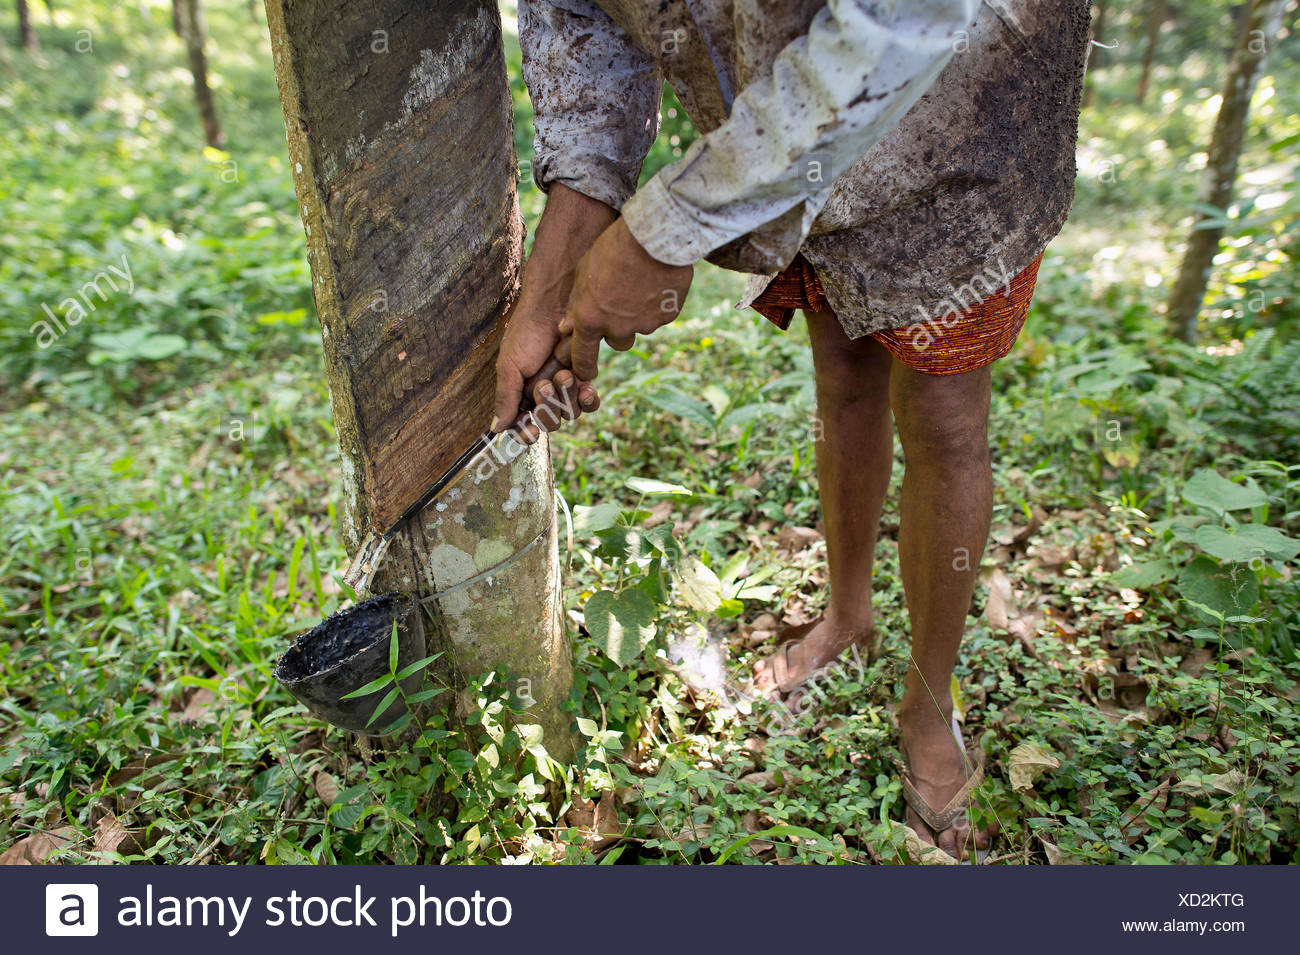 Man making an incision on a Rubber Tree (Hevea brasiliensis), on a natural rubber plantation, Peermade, Kerala, India - Stock Image